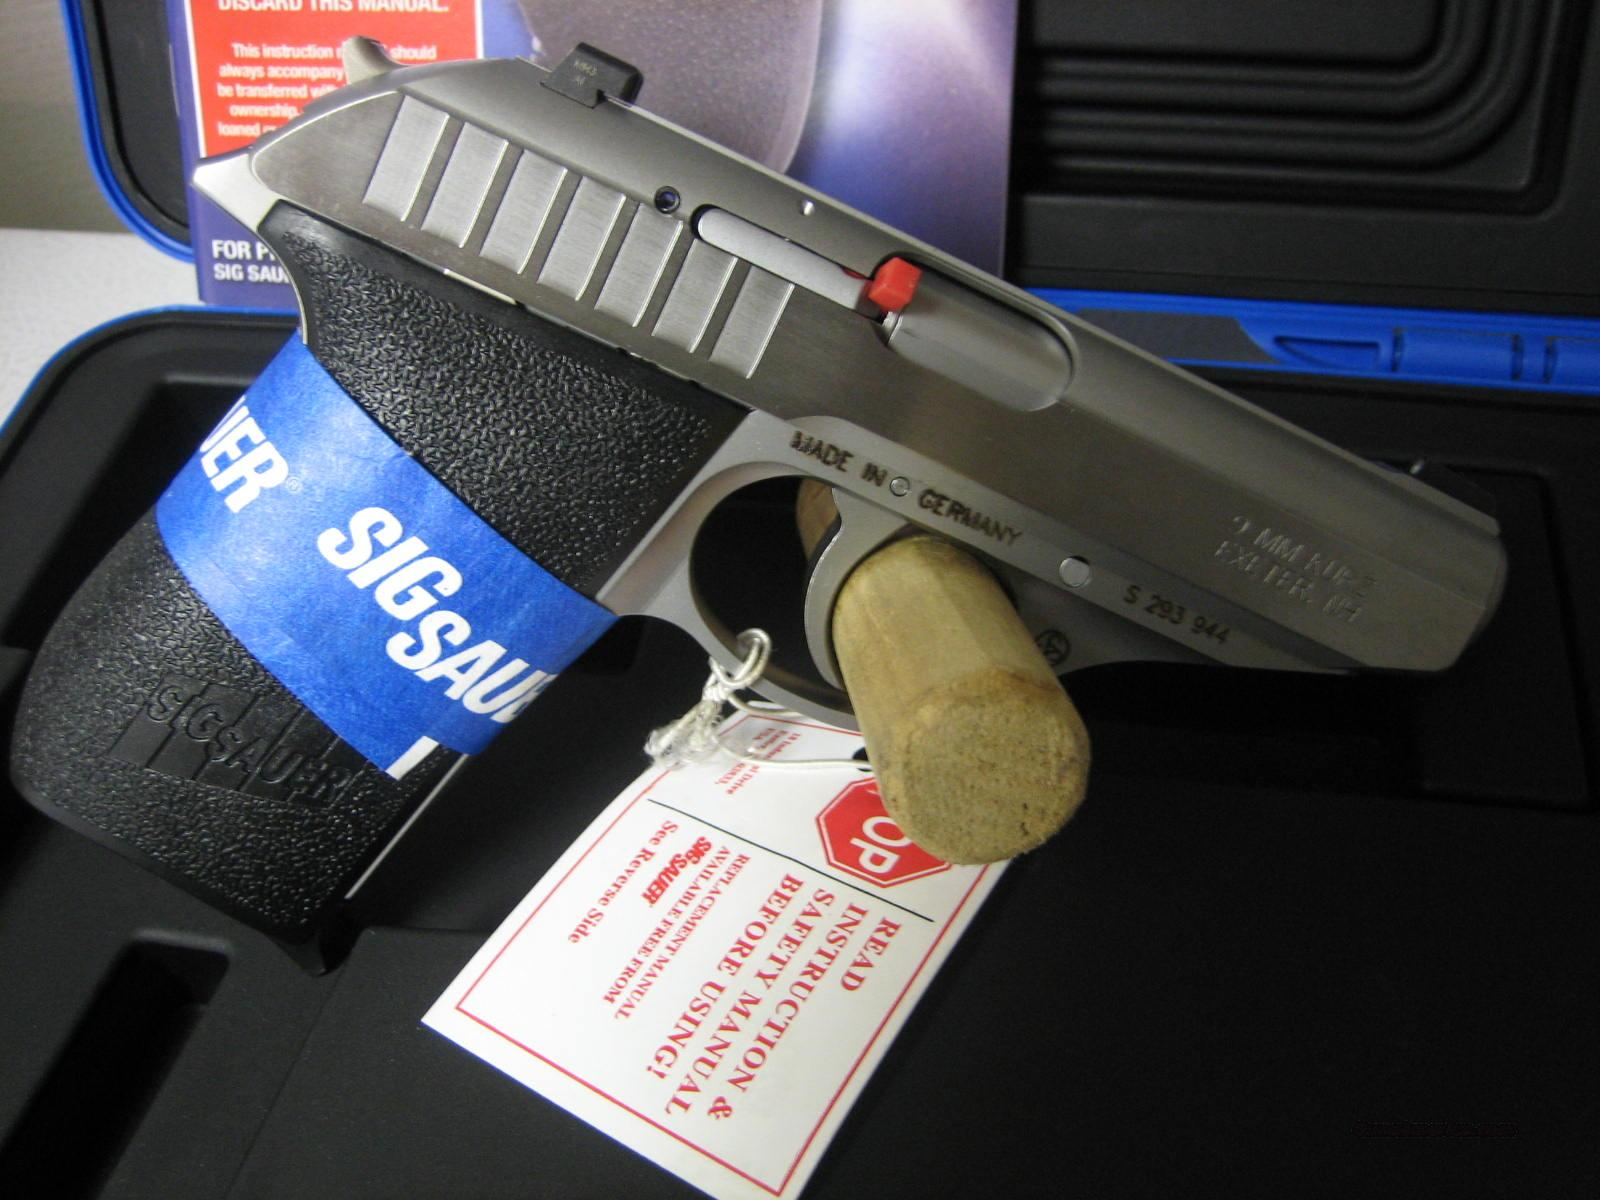 Sig 232 Stainless -380acp  Guns > Pistols > Sig - Sauer/Sigarms Pistols > Other